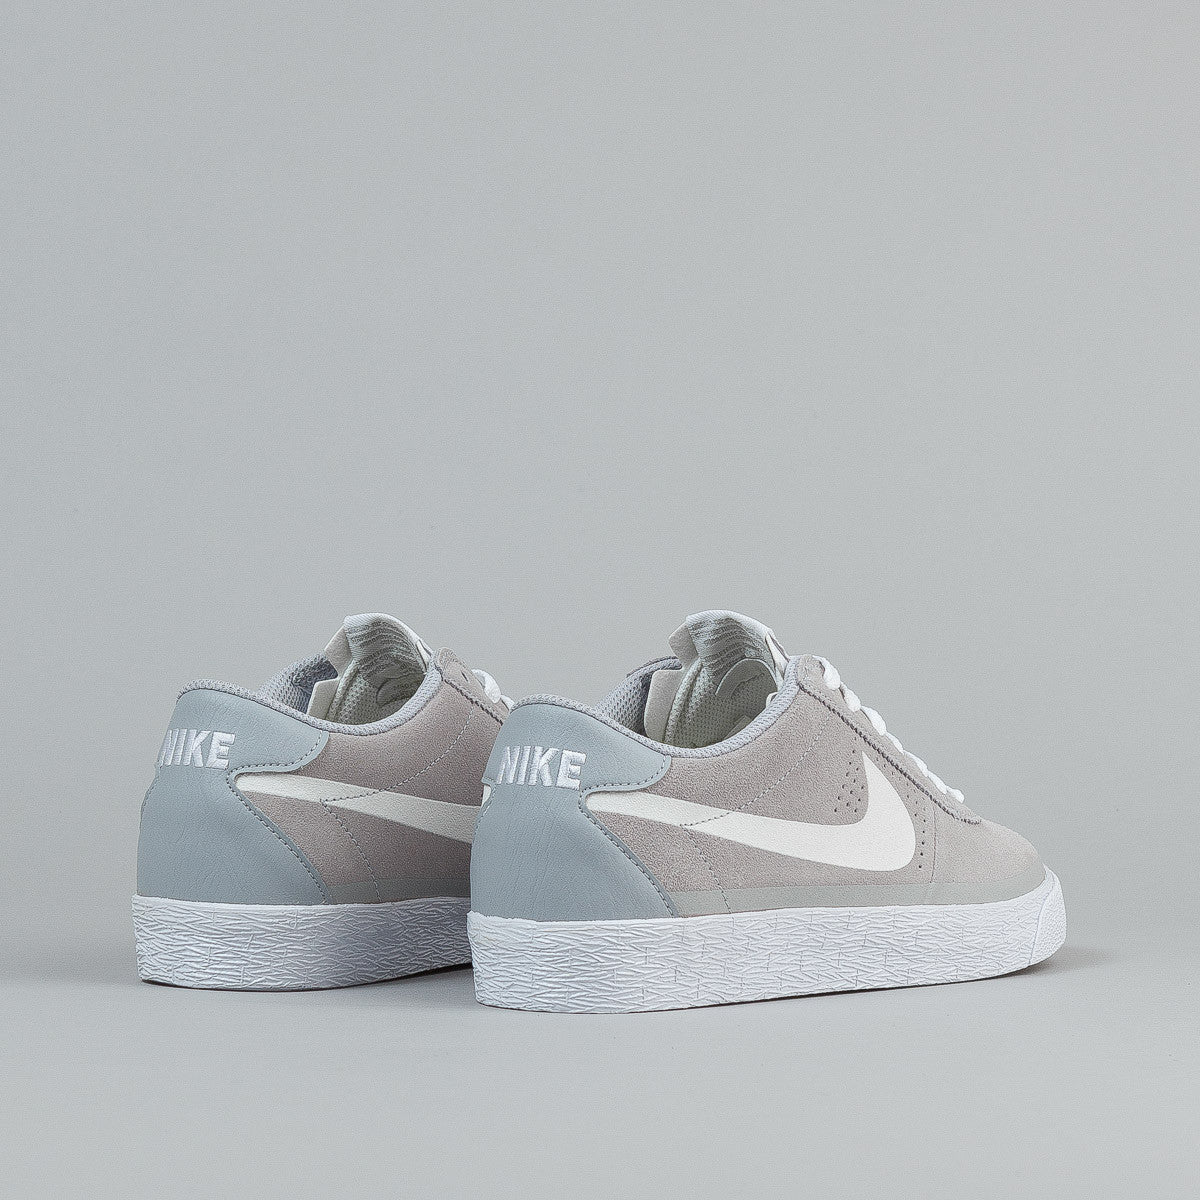 Nike SB Bruin Premium Wolf Grey / White - Gum Light Brown